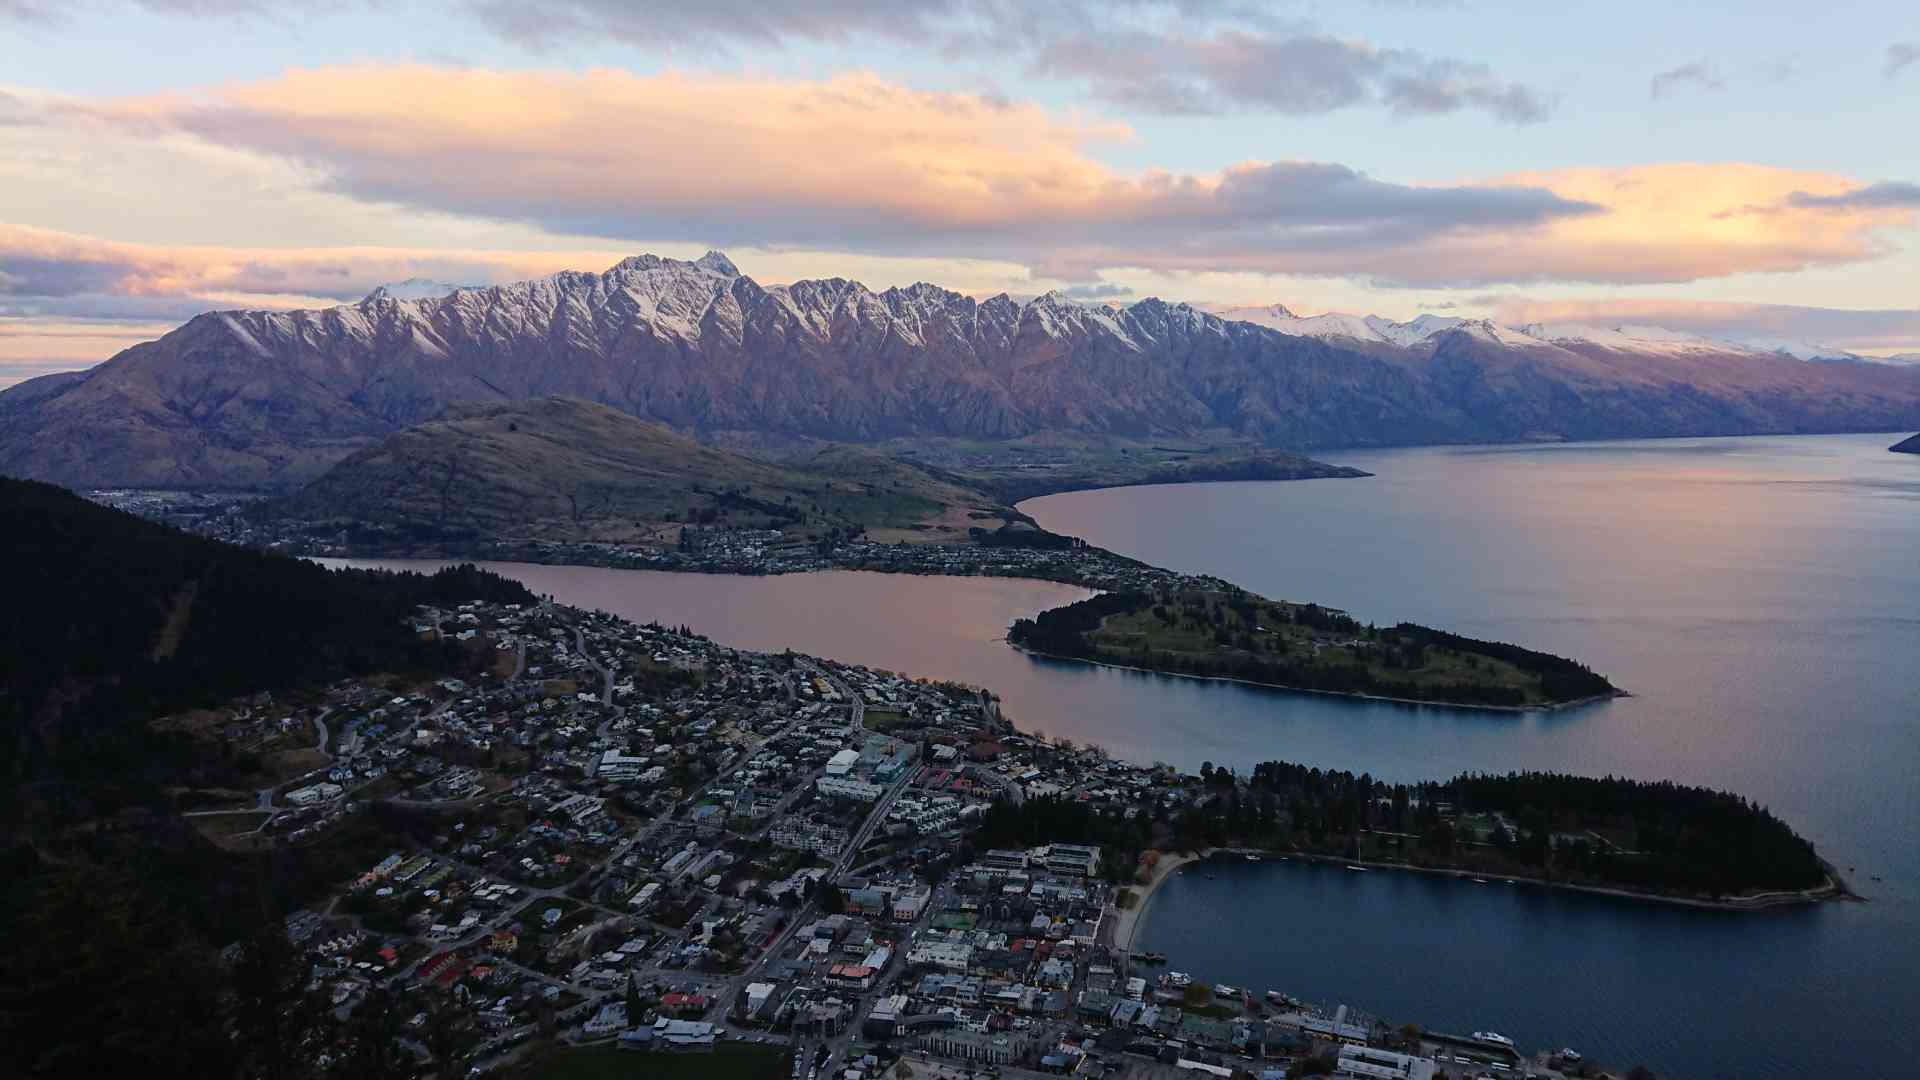 Queenstown, New Zealand by Priscilla Aster